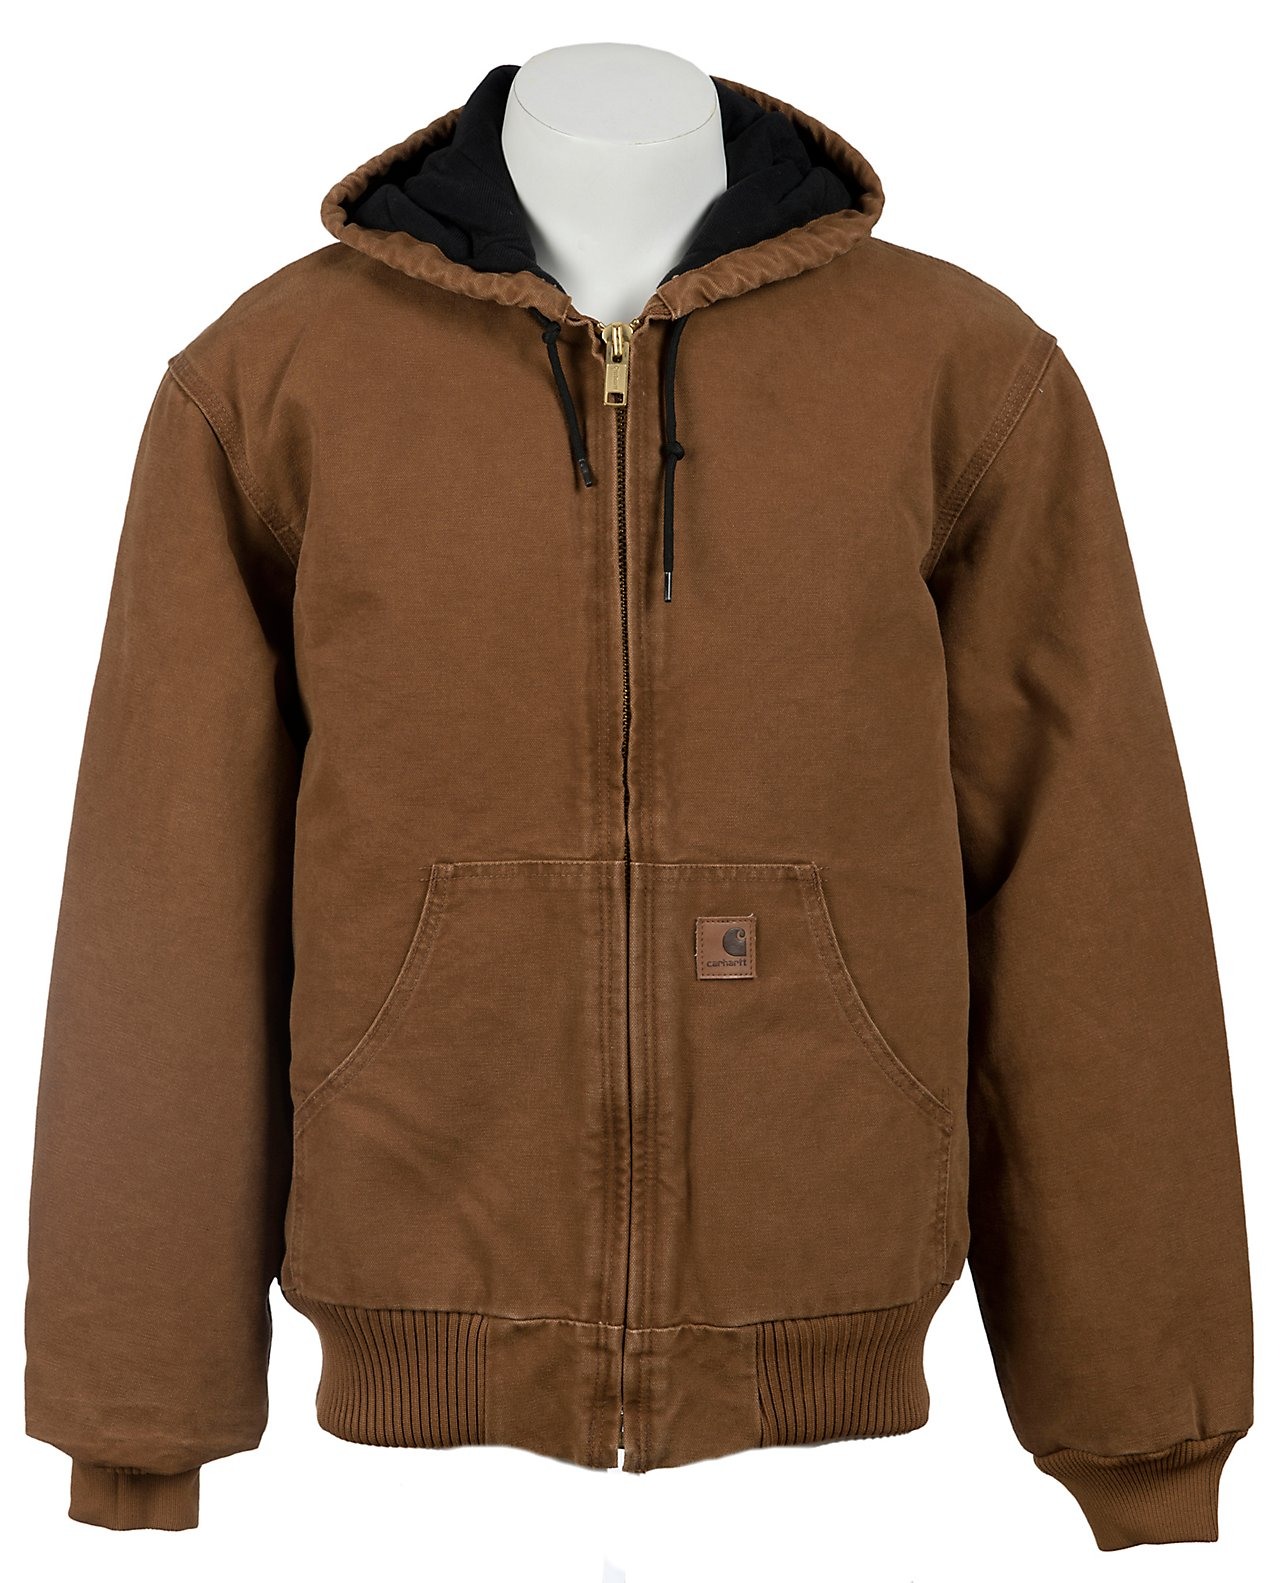 04583b94776e4 Carhartt Carhartt Brown Quilted Flannel Lined Sandstone Active Jacket